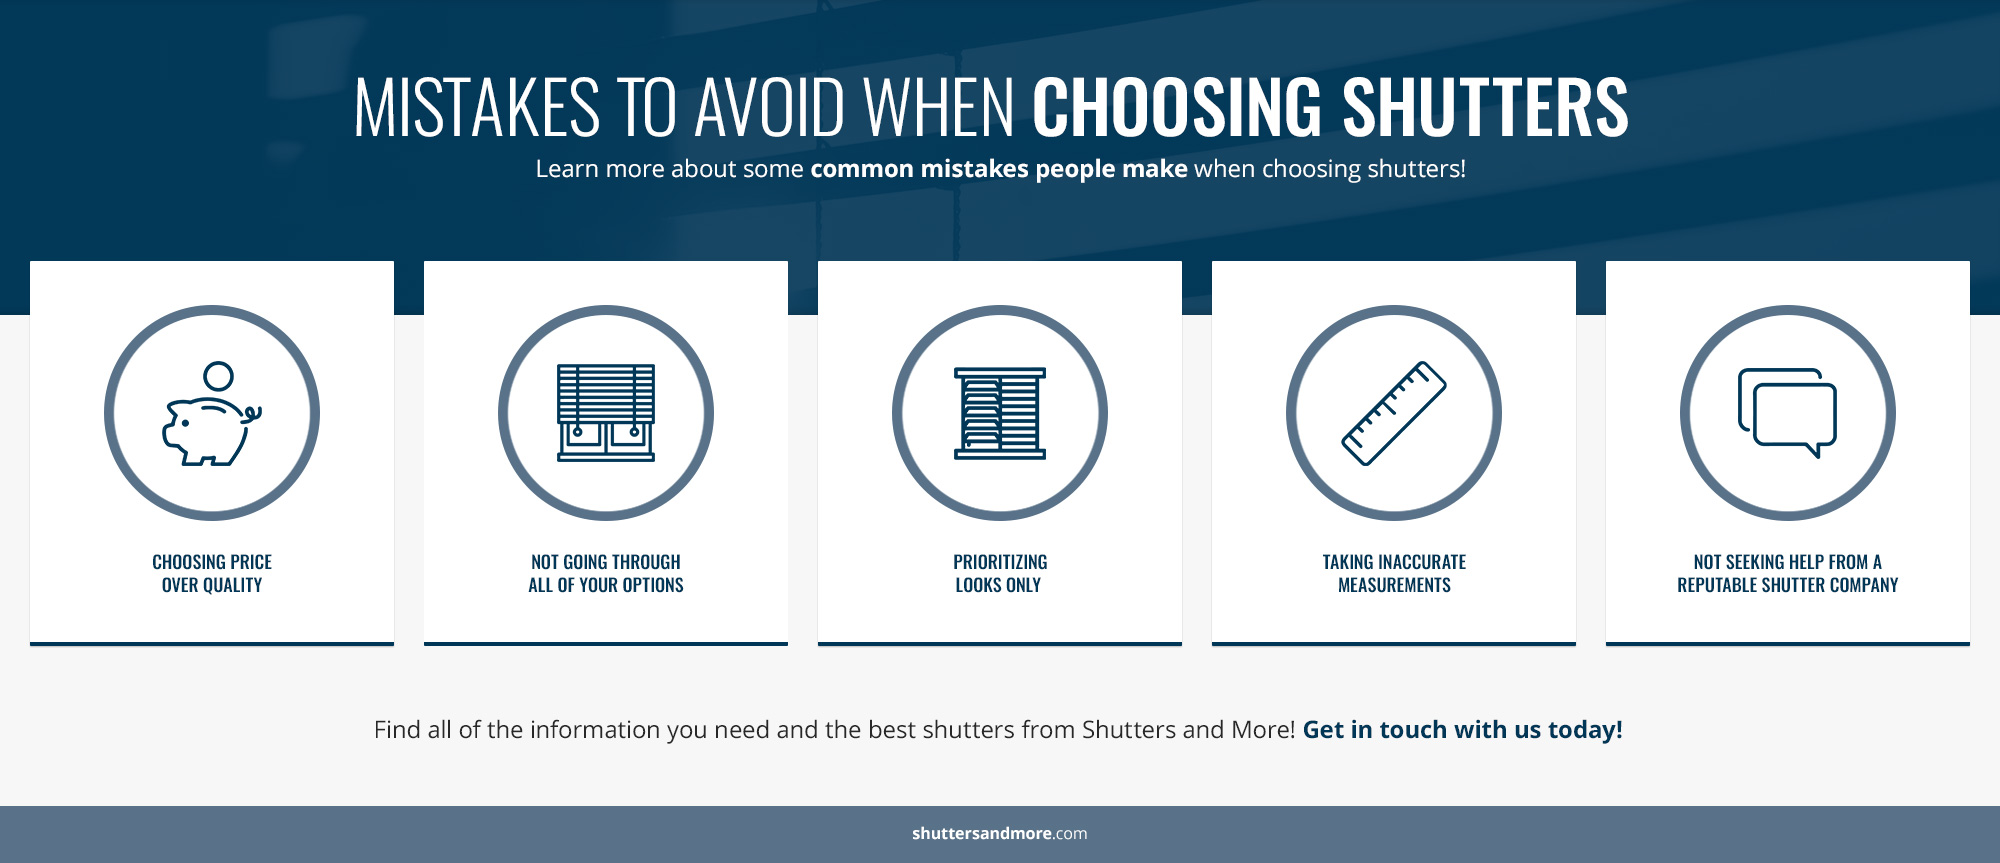 Mistakes to Avoid When Choosing Shutters - Infographic